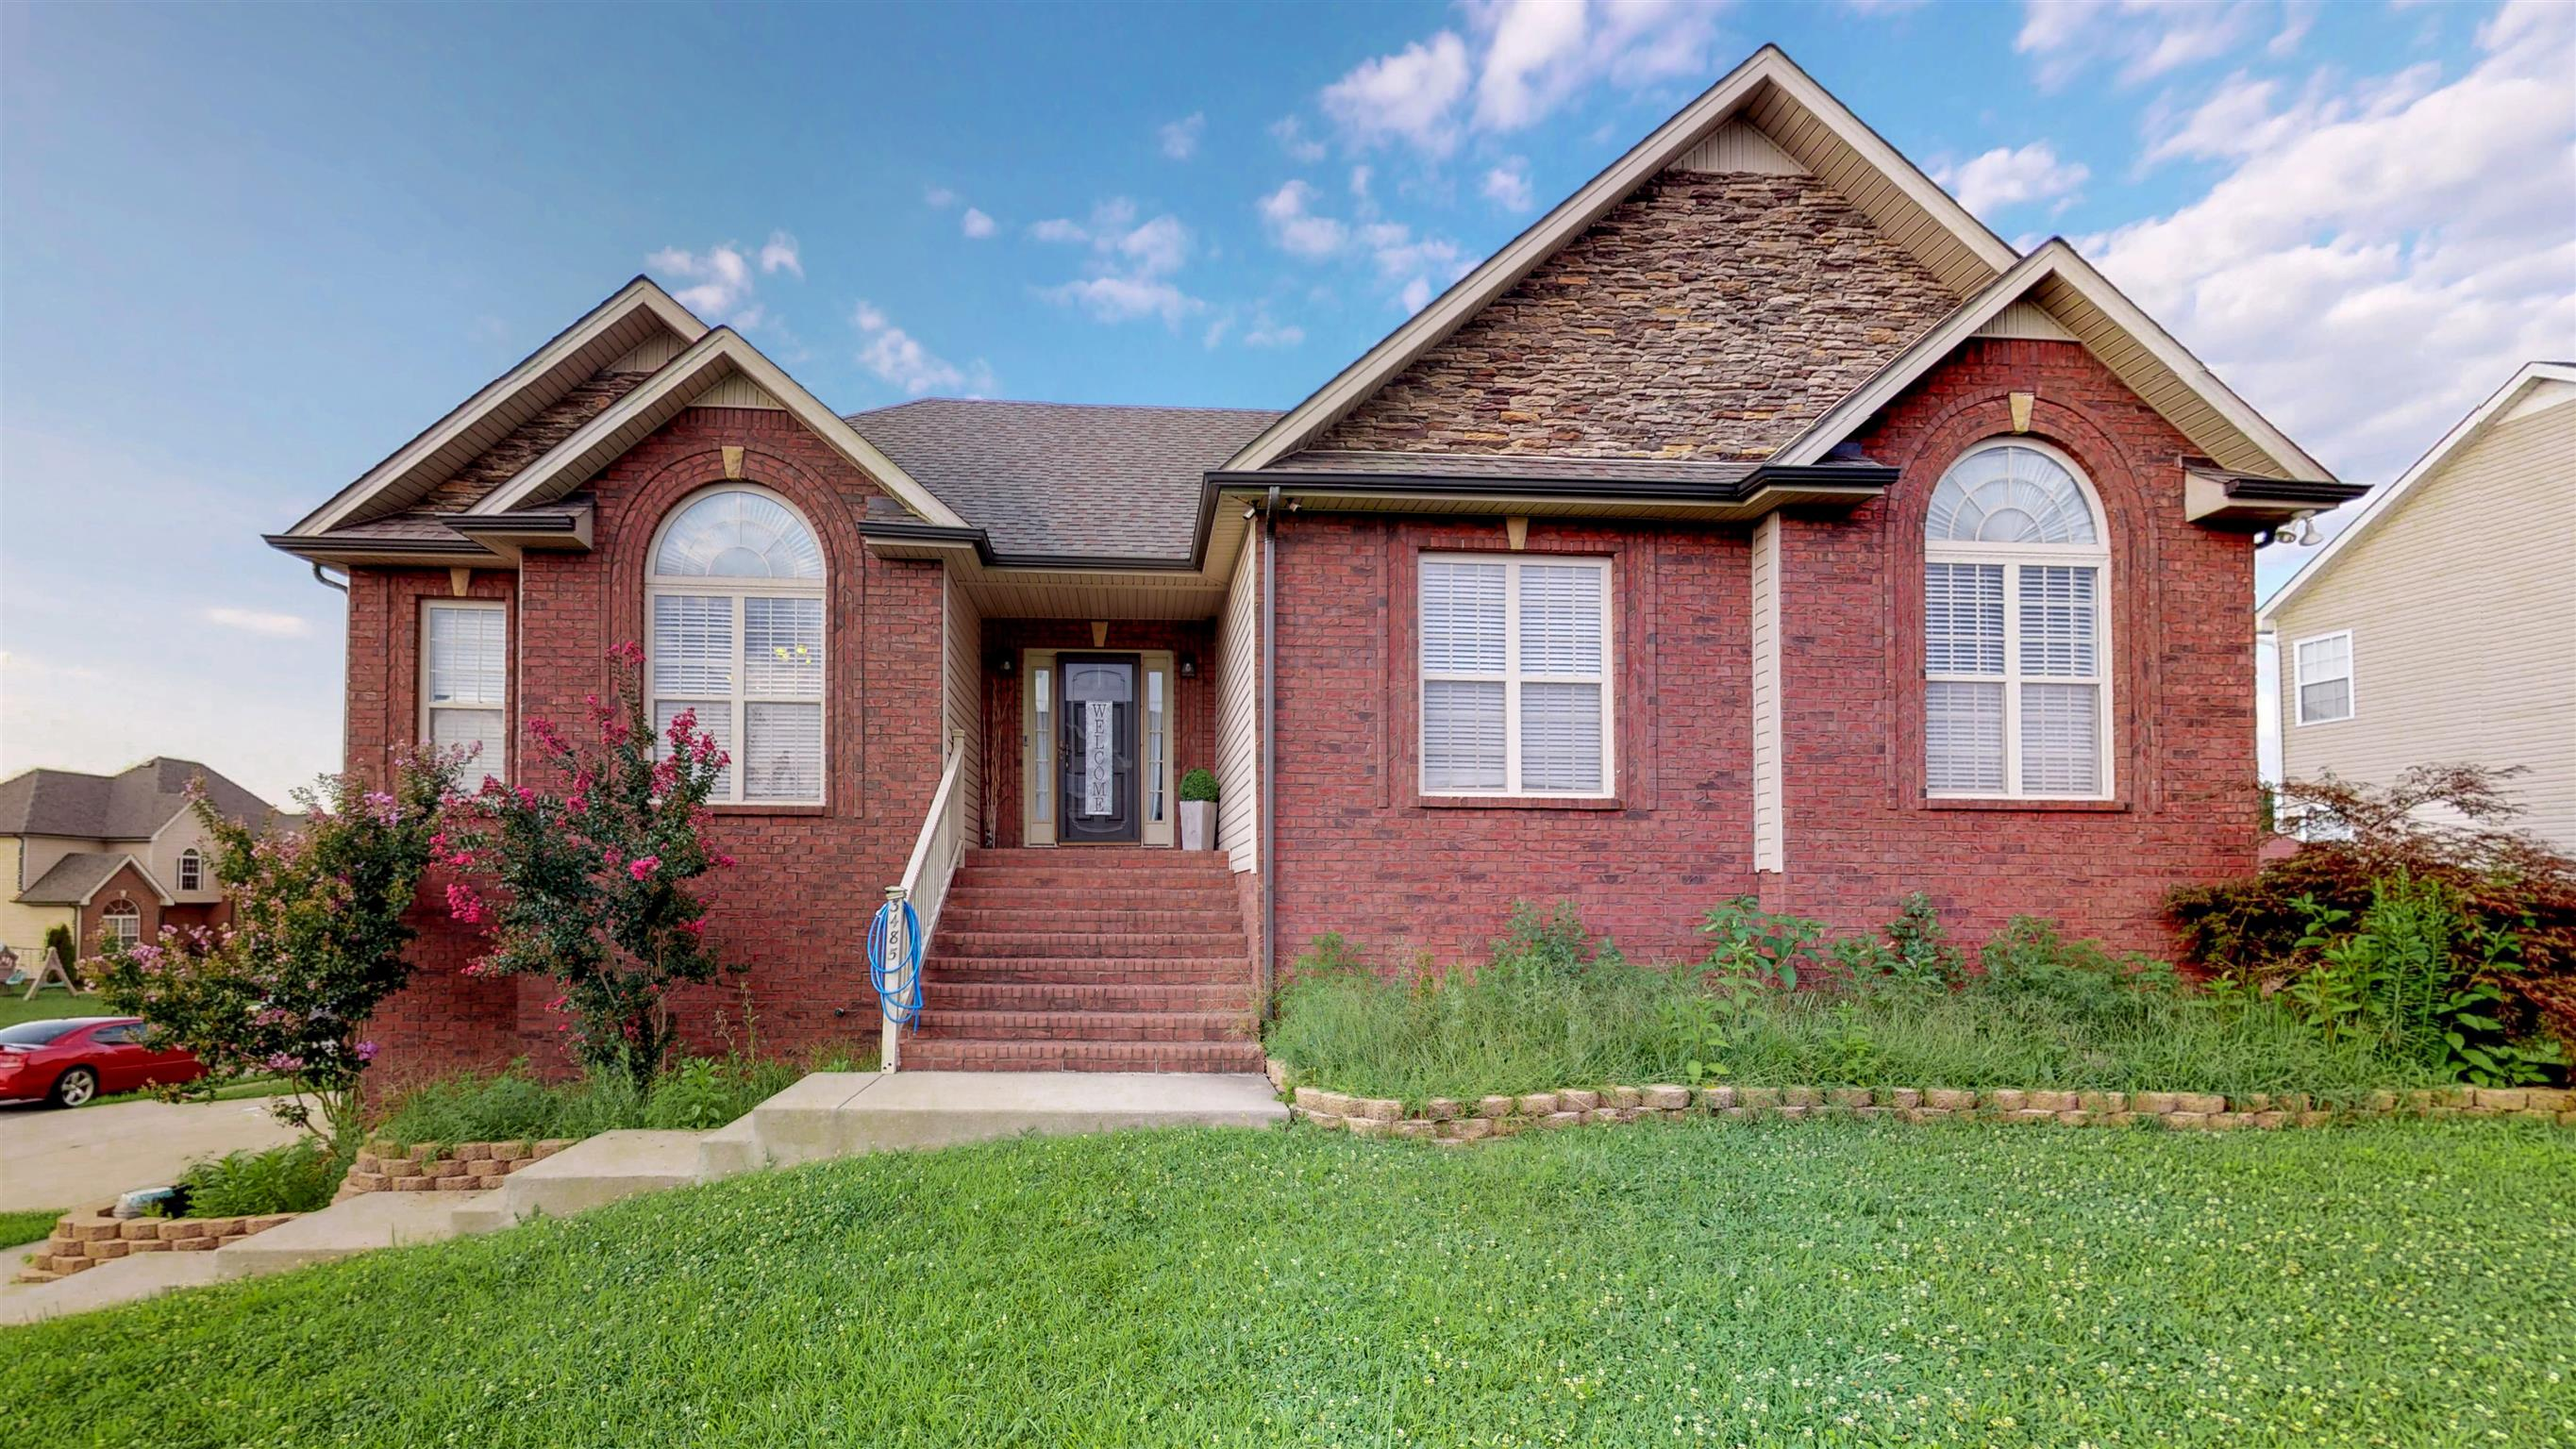 3485 Sikorsky Ln, Clarksville, TN 37042 - Clarksville, TN real estate listing